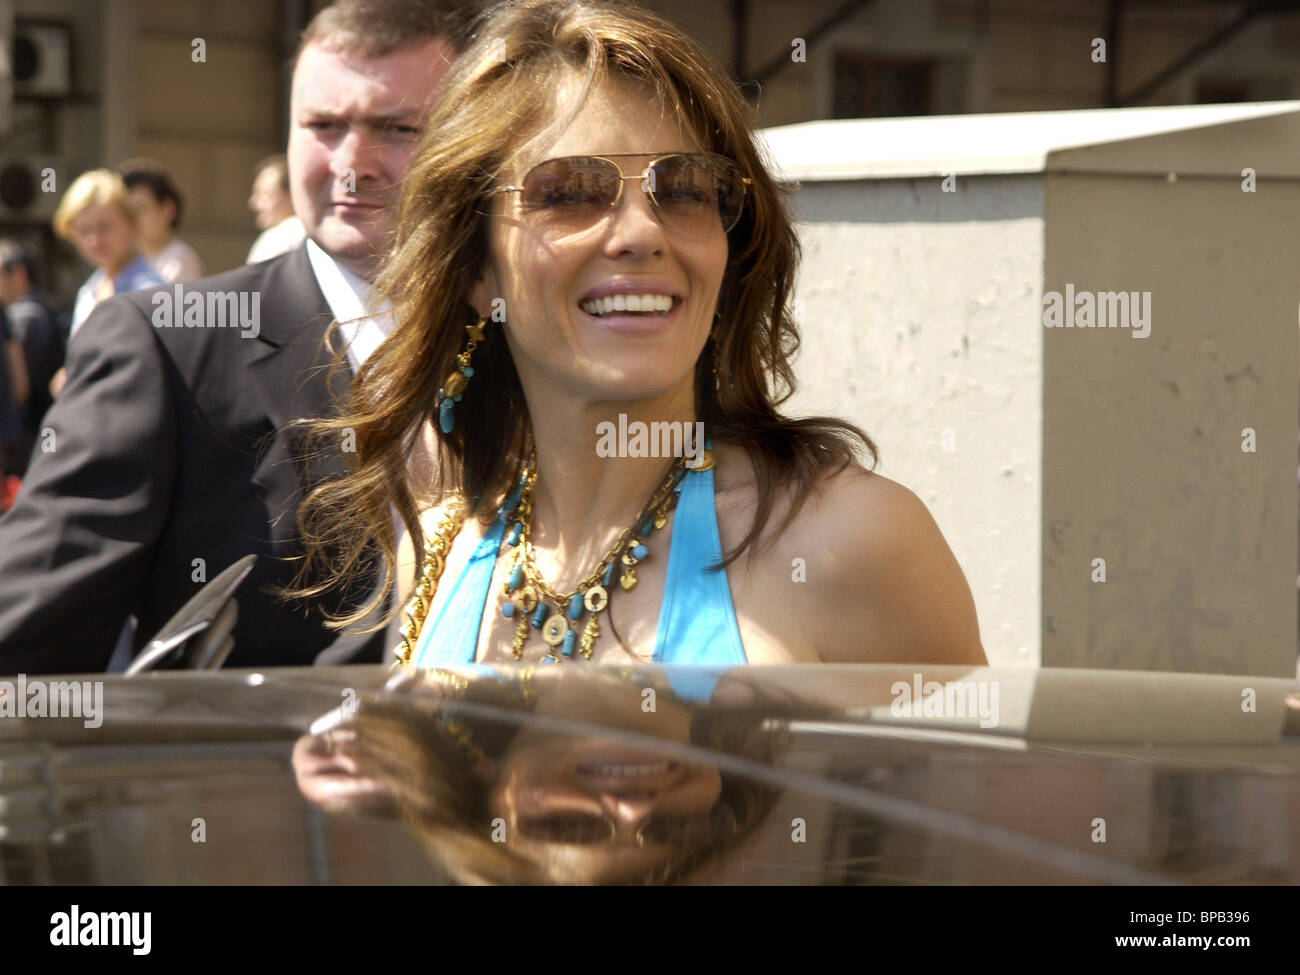 Elizabeth Hurley presents her bath suit exclusive collection in Moscow - Stock Image